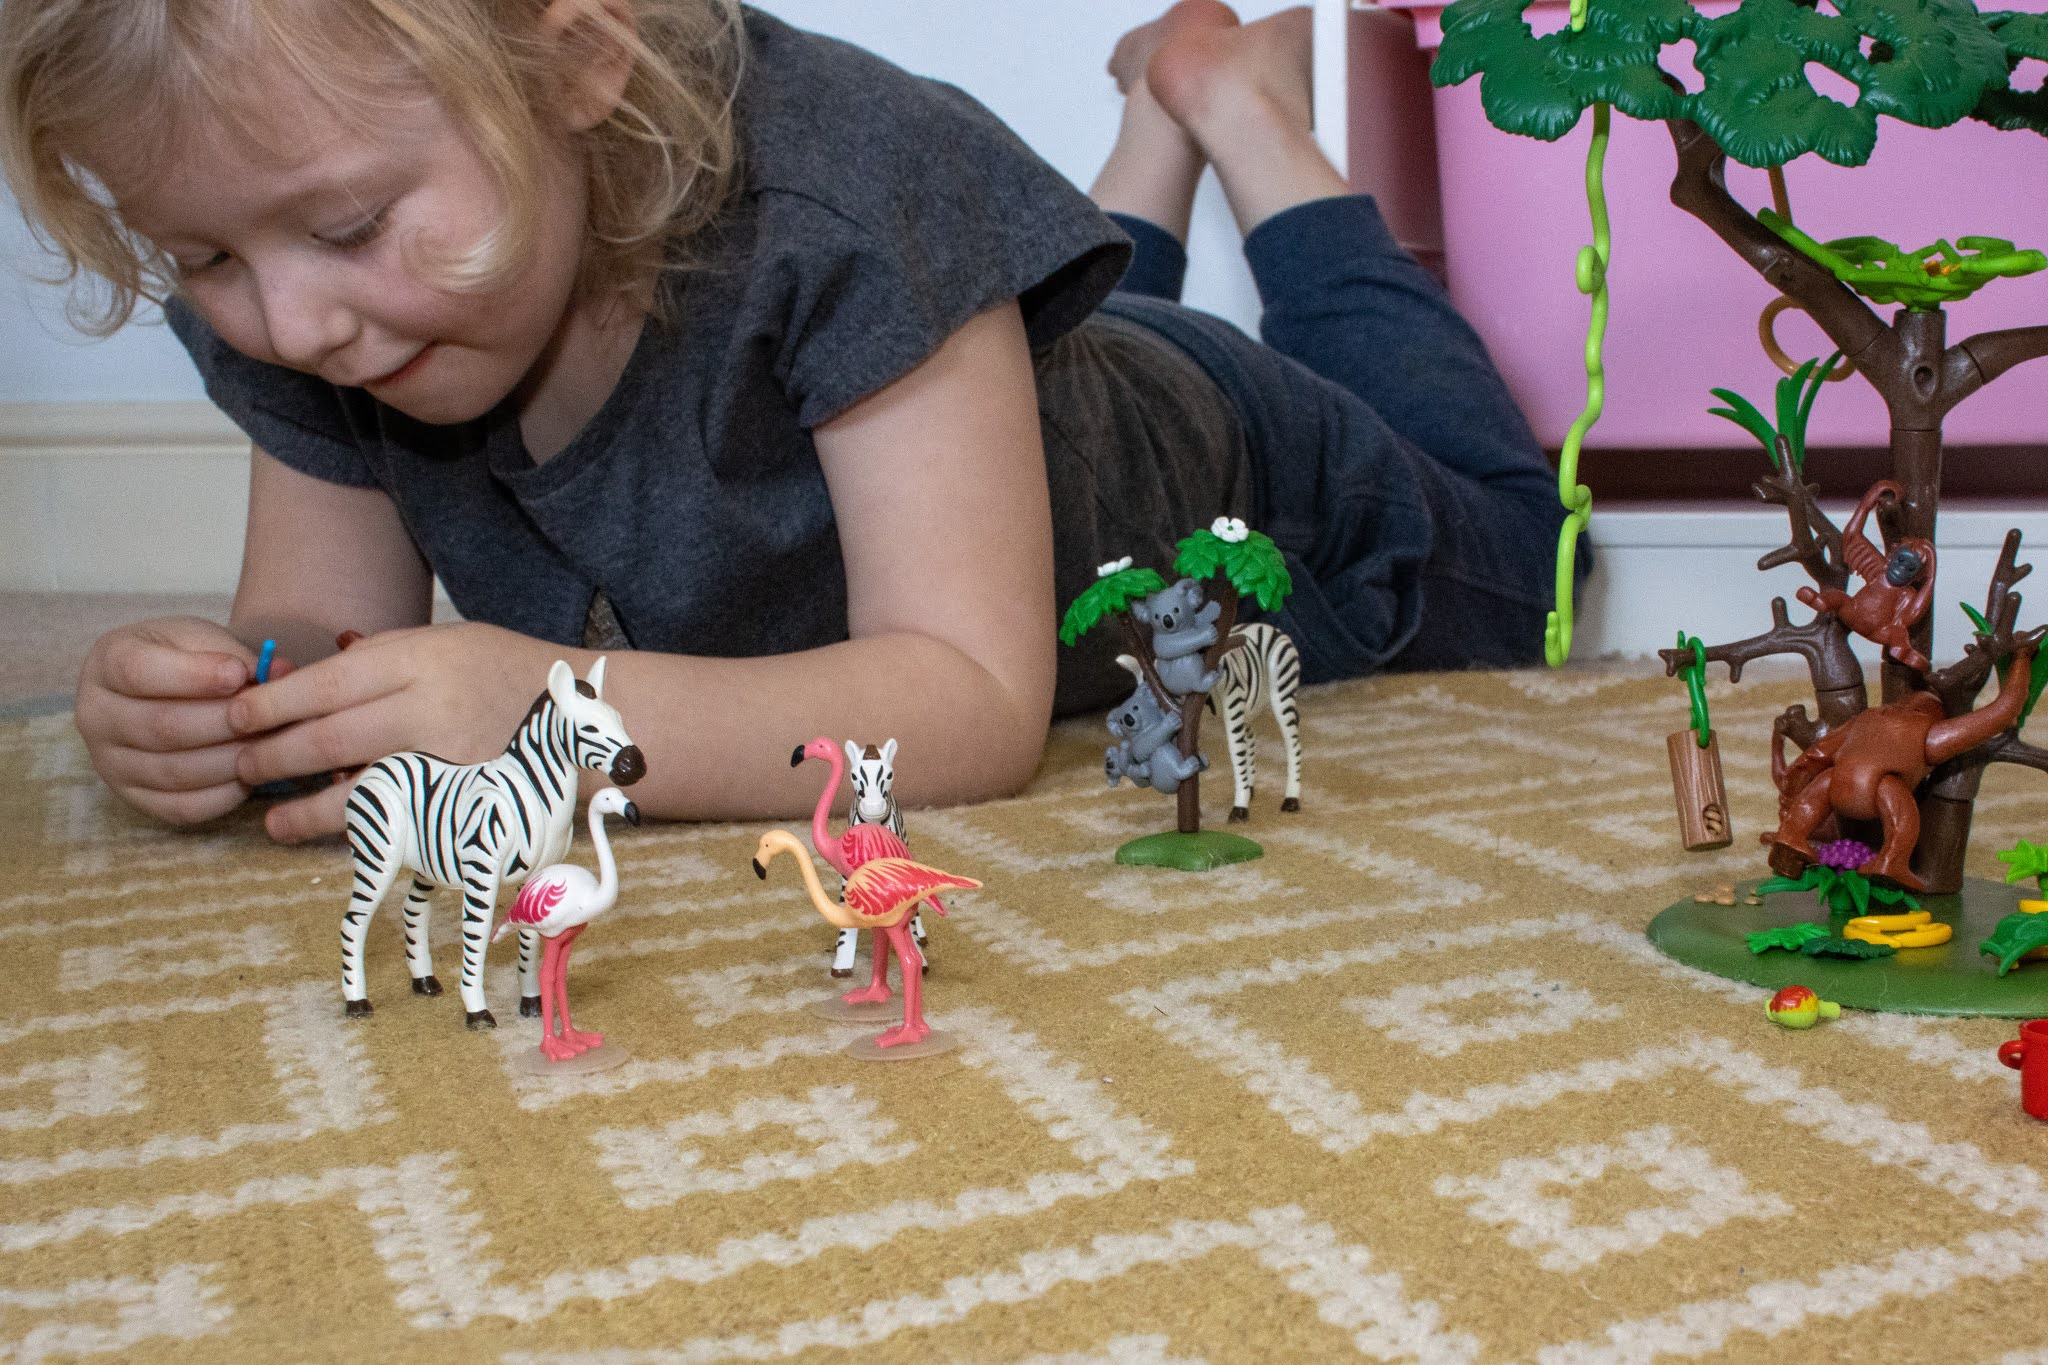 A 5 year old girl lying on the floor playing with some detailed animal toys